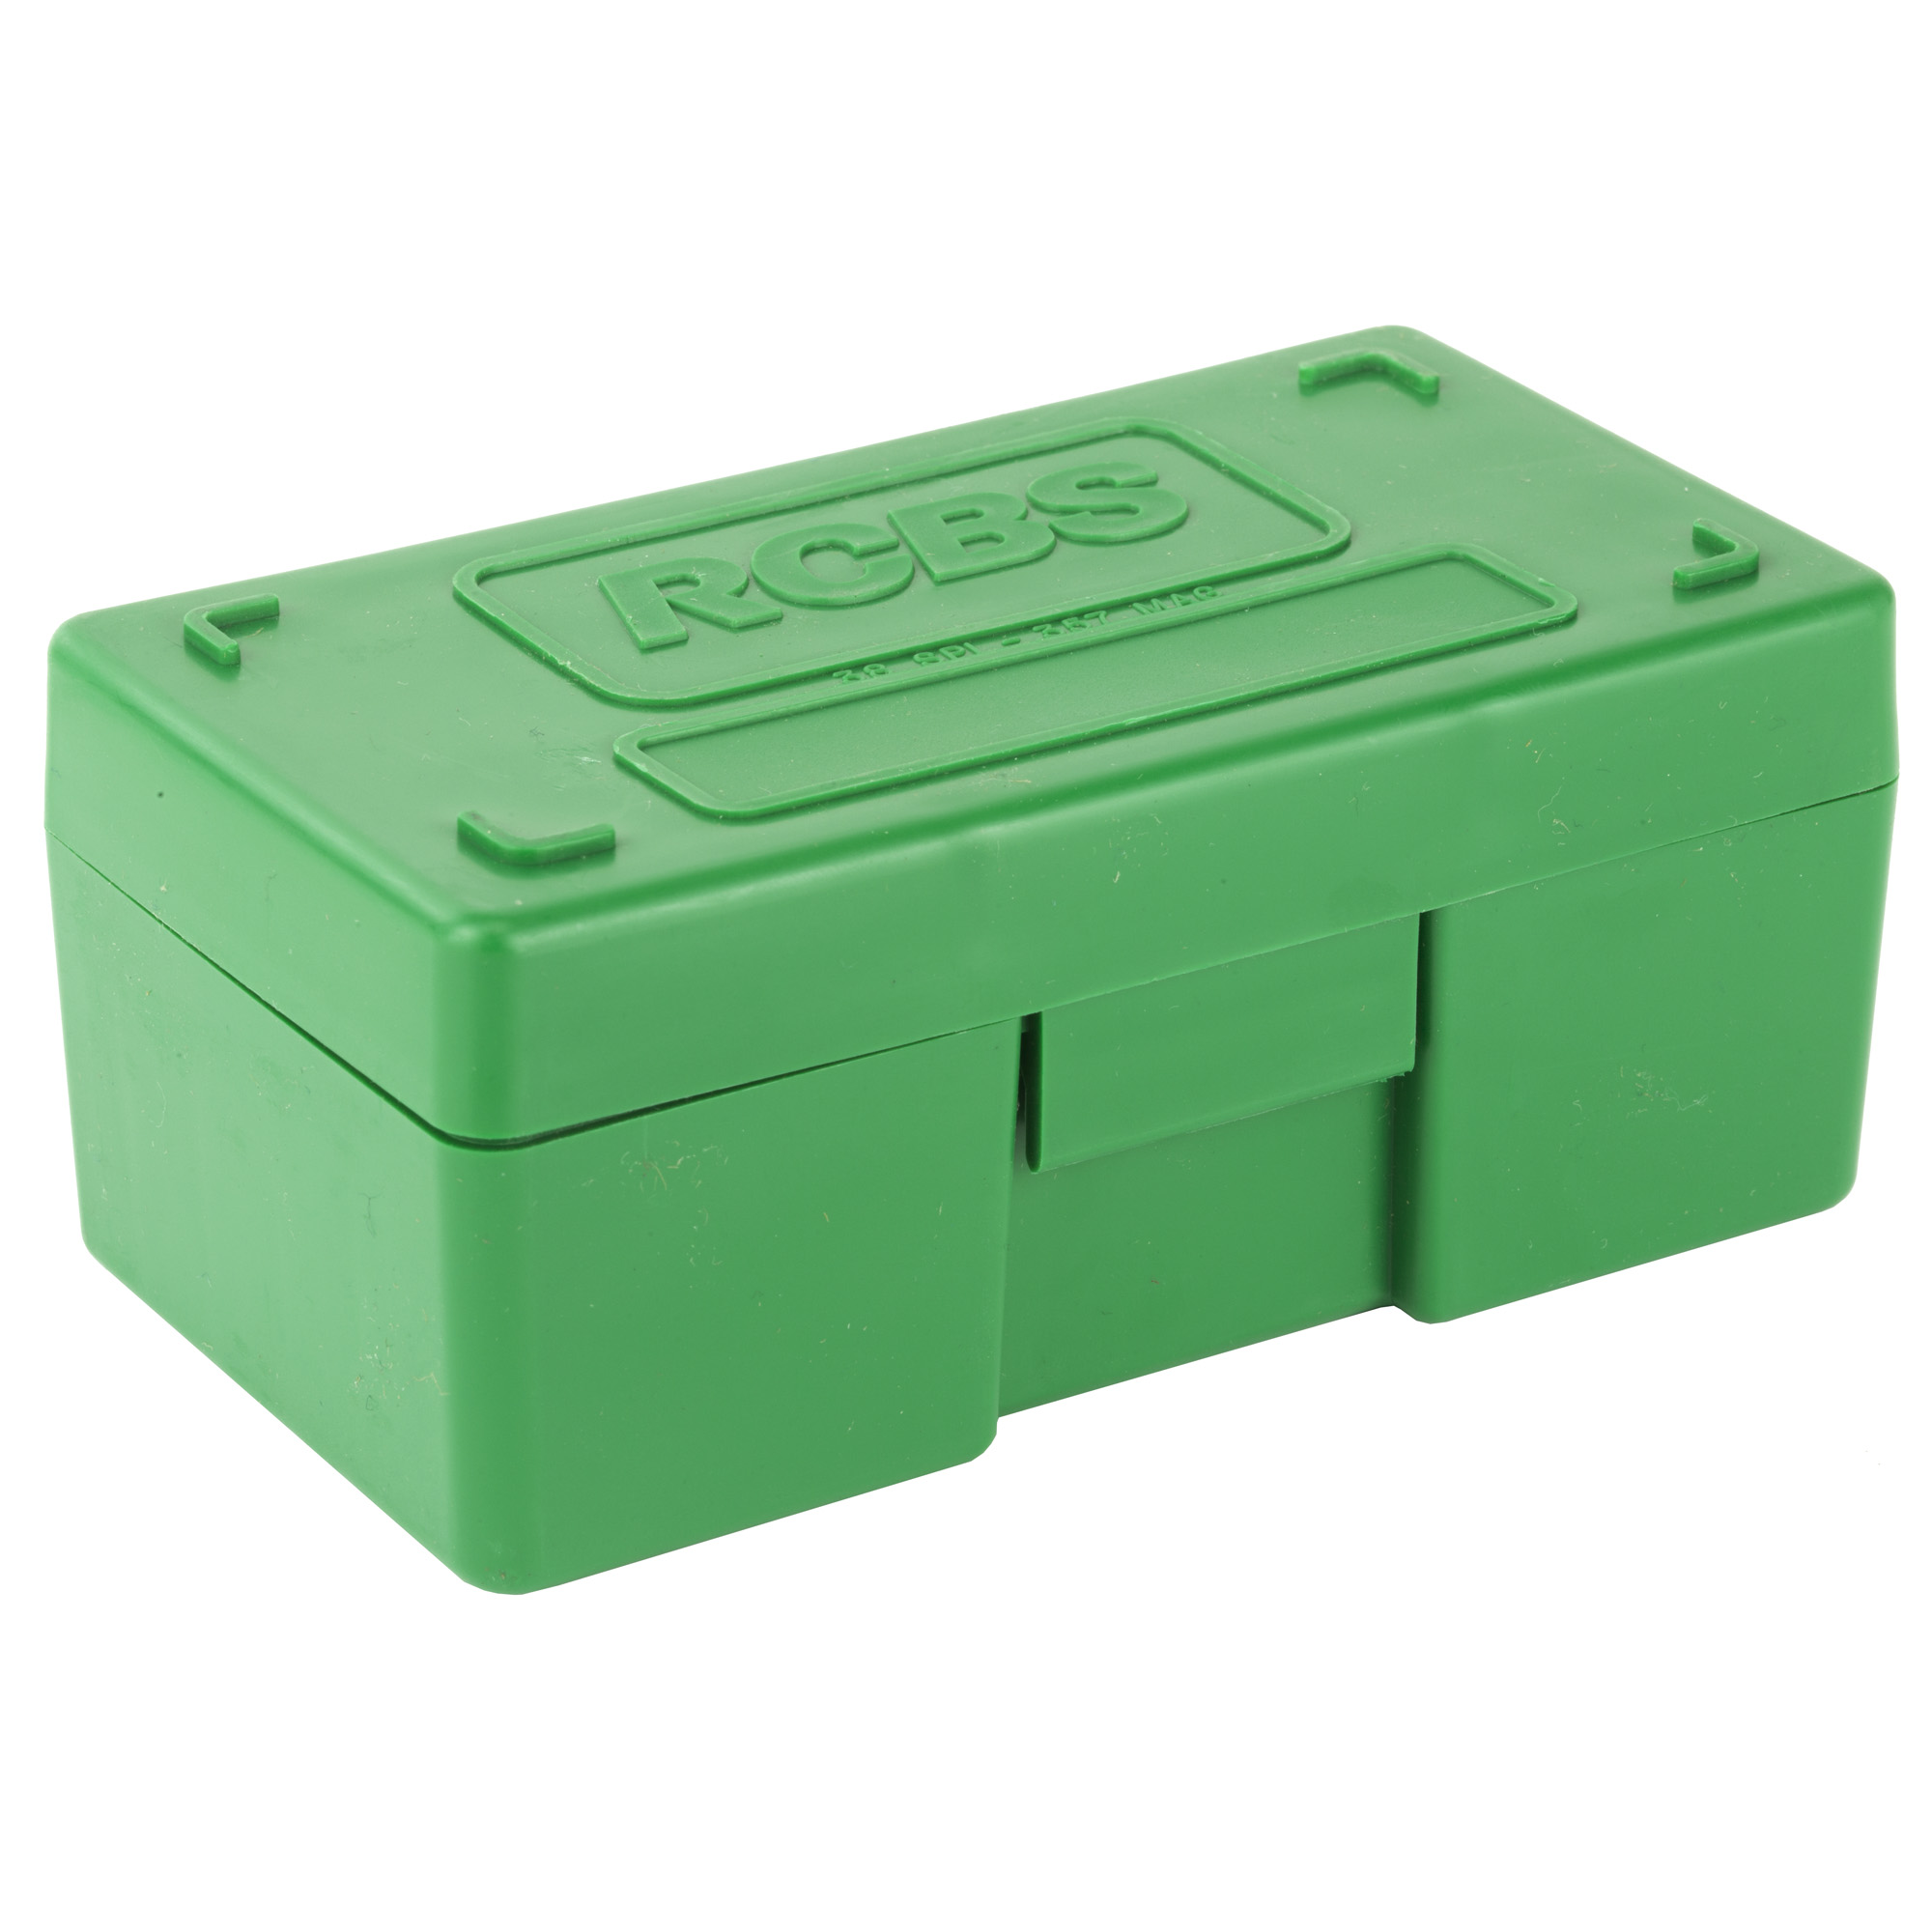 """These tough"""" plastic boxes have flush exteriors with recessed latches. They're designed to stack easily"""" and feature an anti-rattle bullet-tip nest"""" empty case support"""" and long-lasting hinge."""